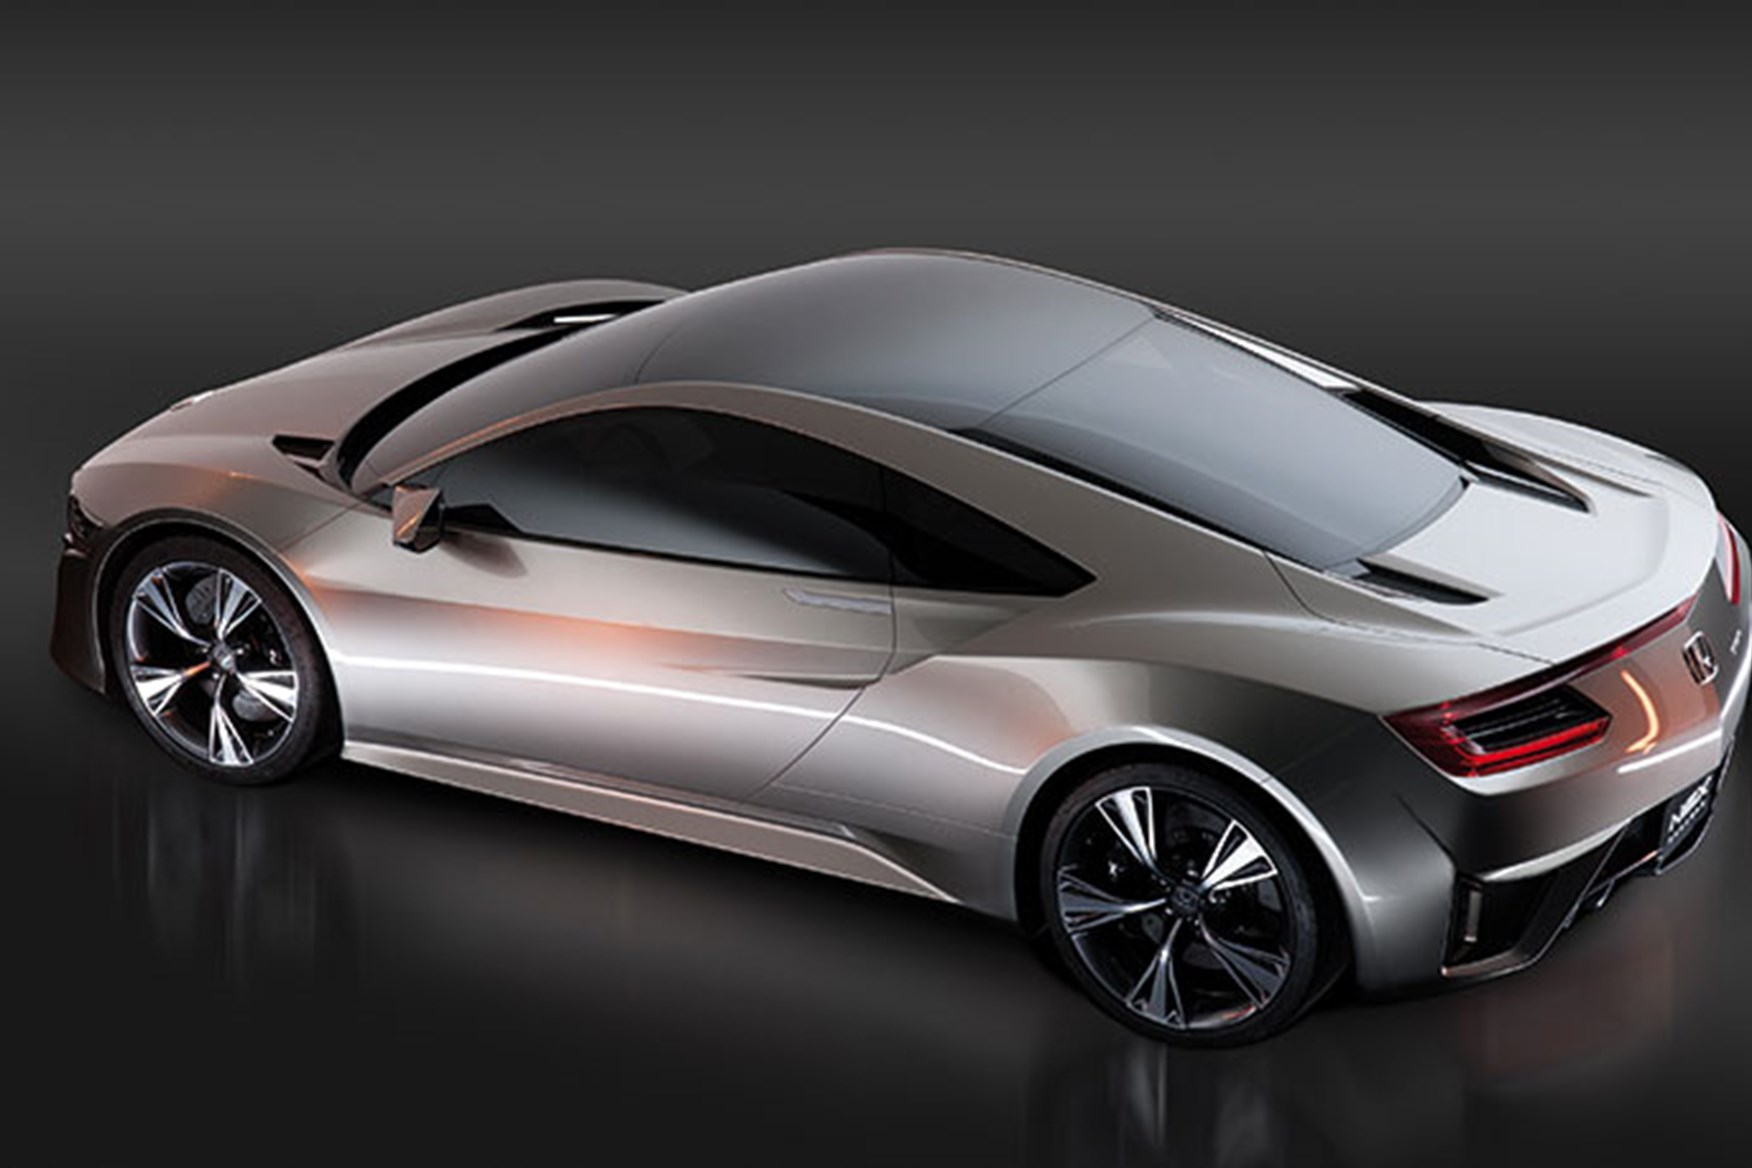 ... One Hundred Brits Have Placed £5k Orders For The New Honda NSX Hybrid Sports  Car ...